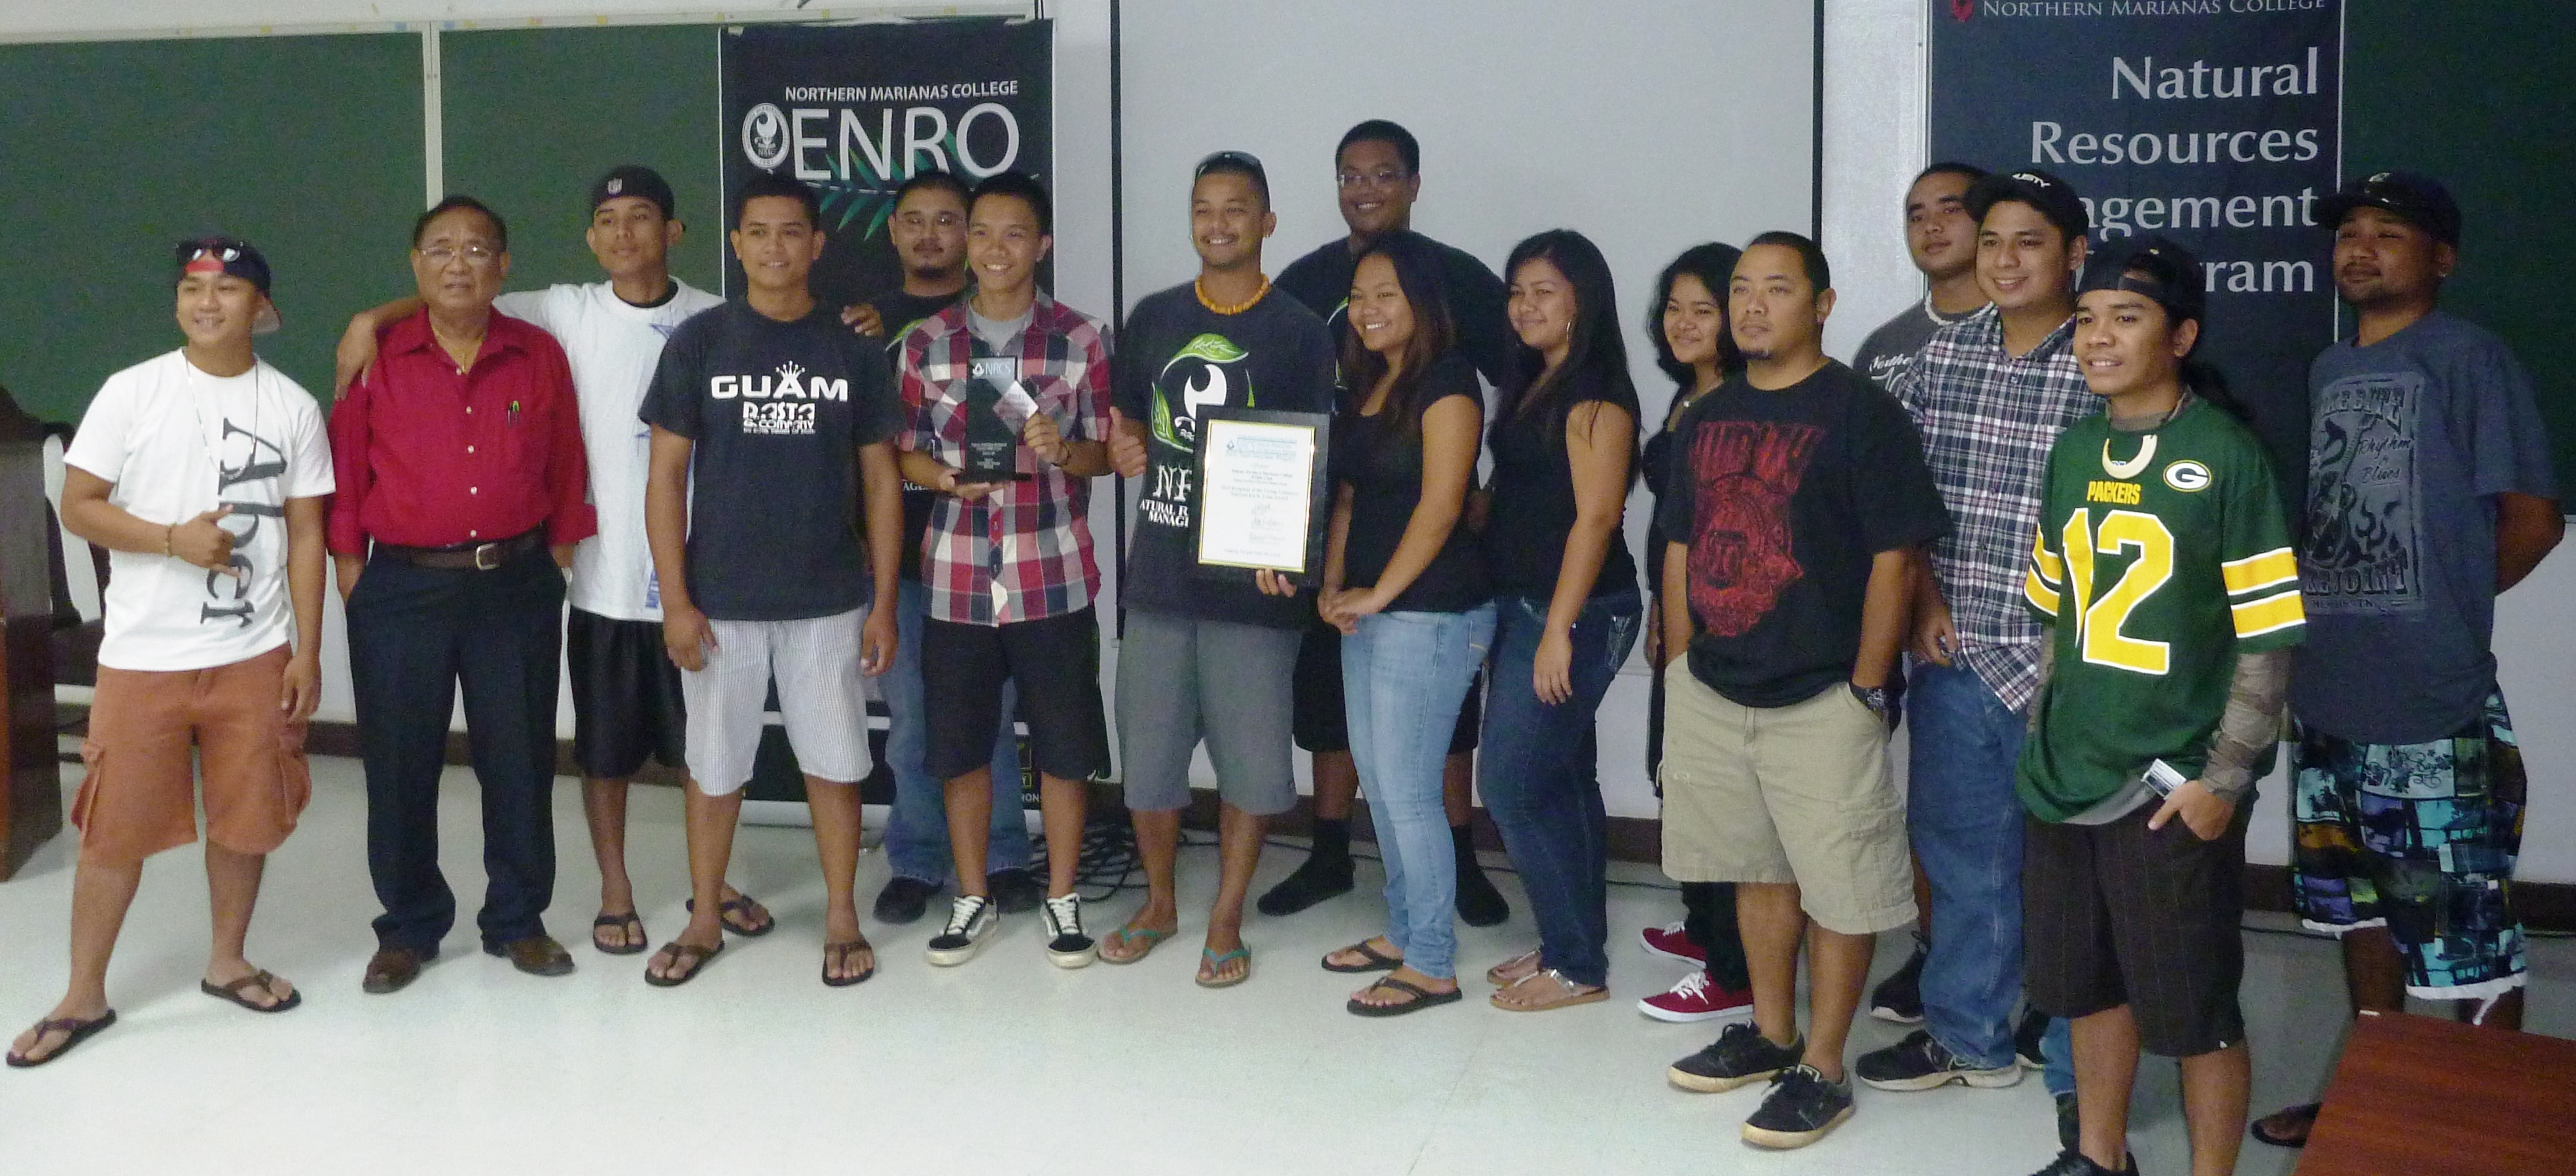 Guam Northern Marianas College ENRO Club